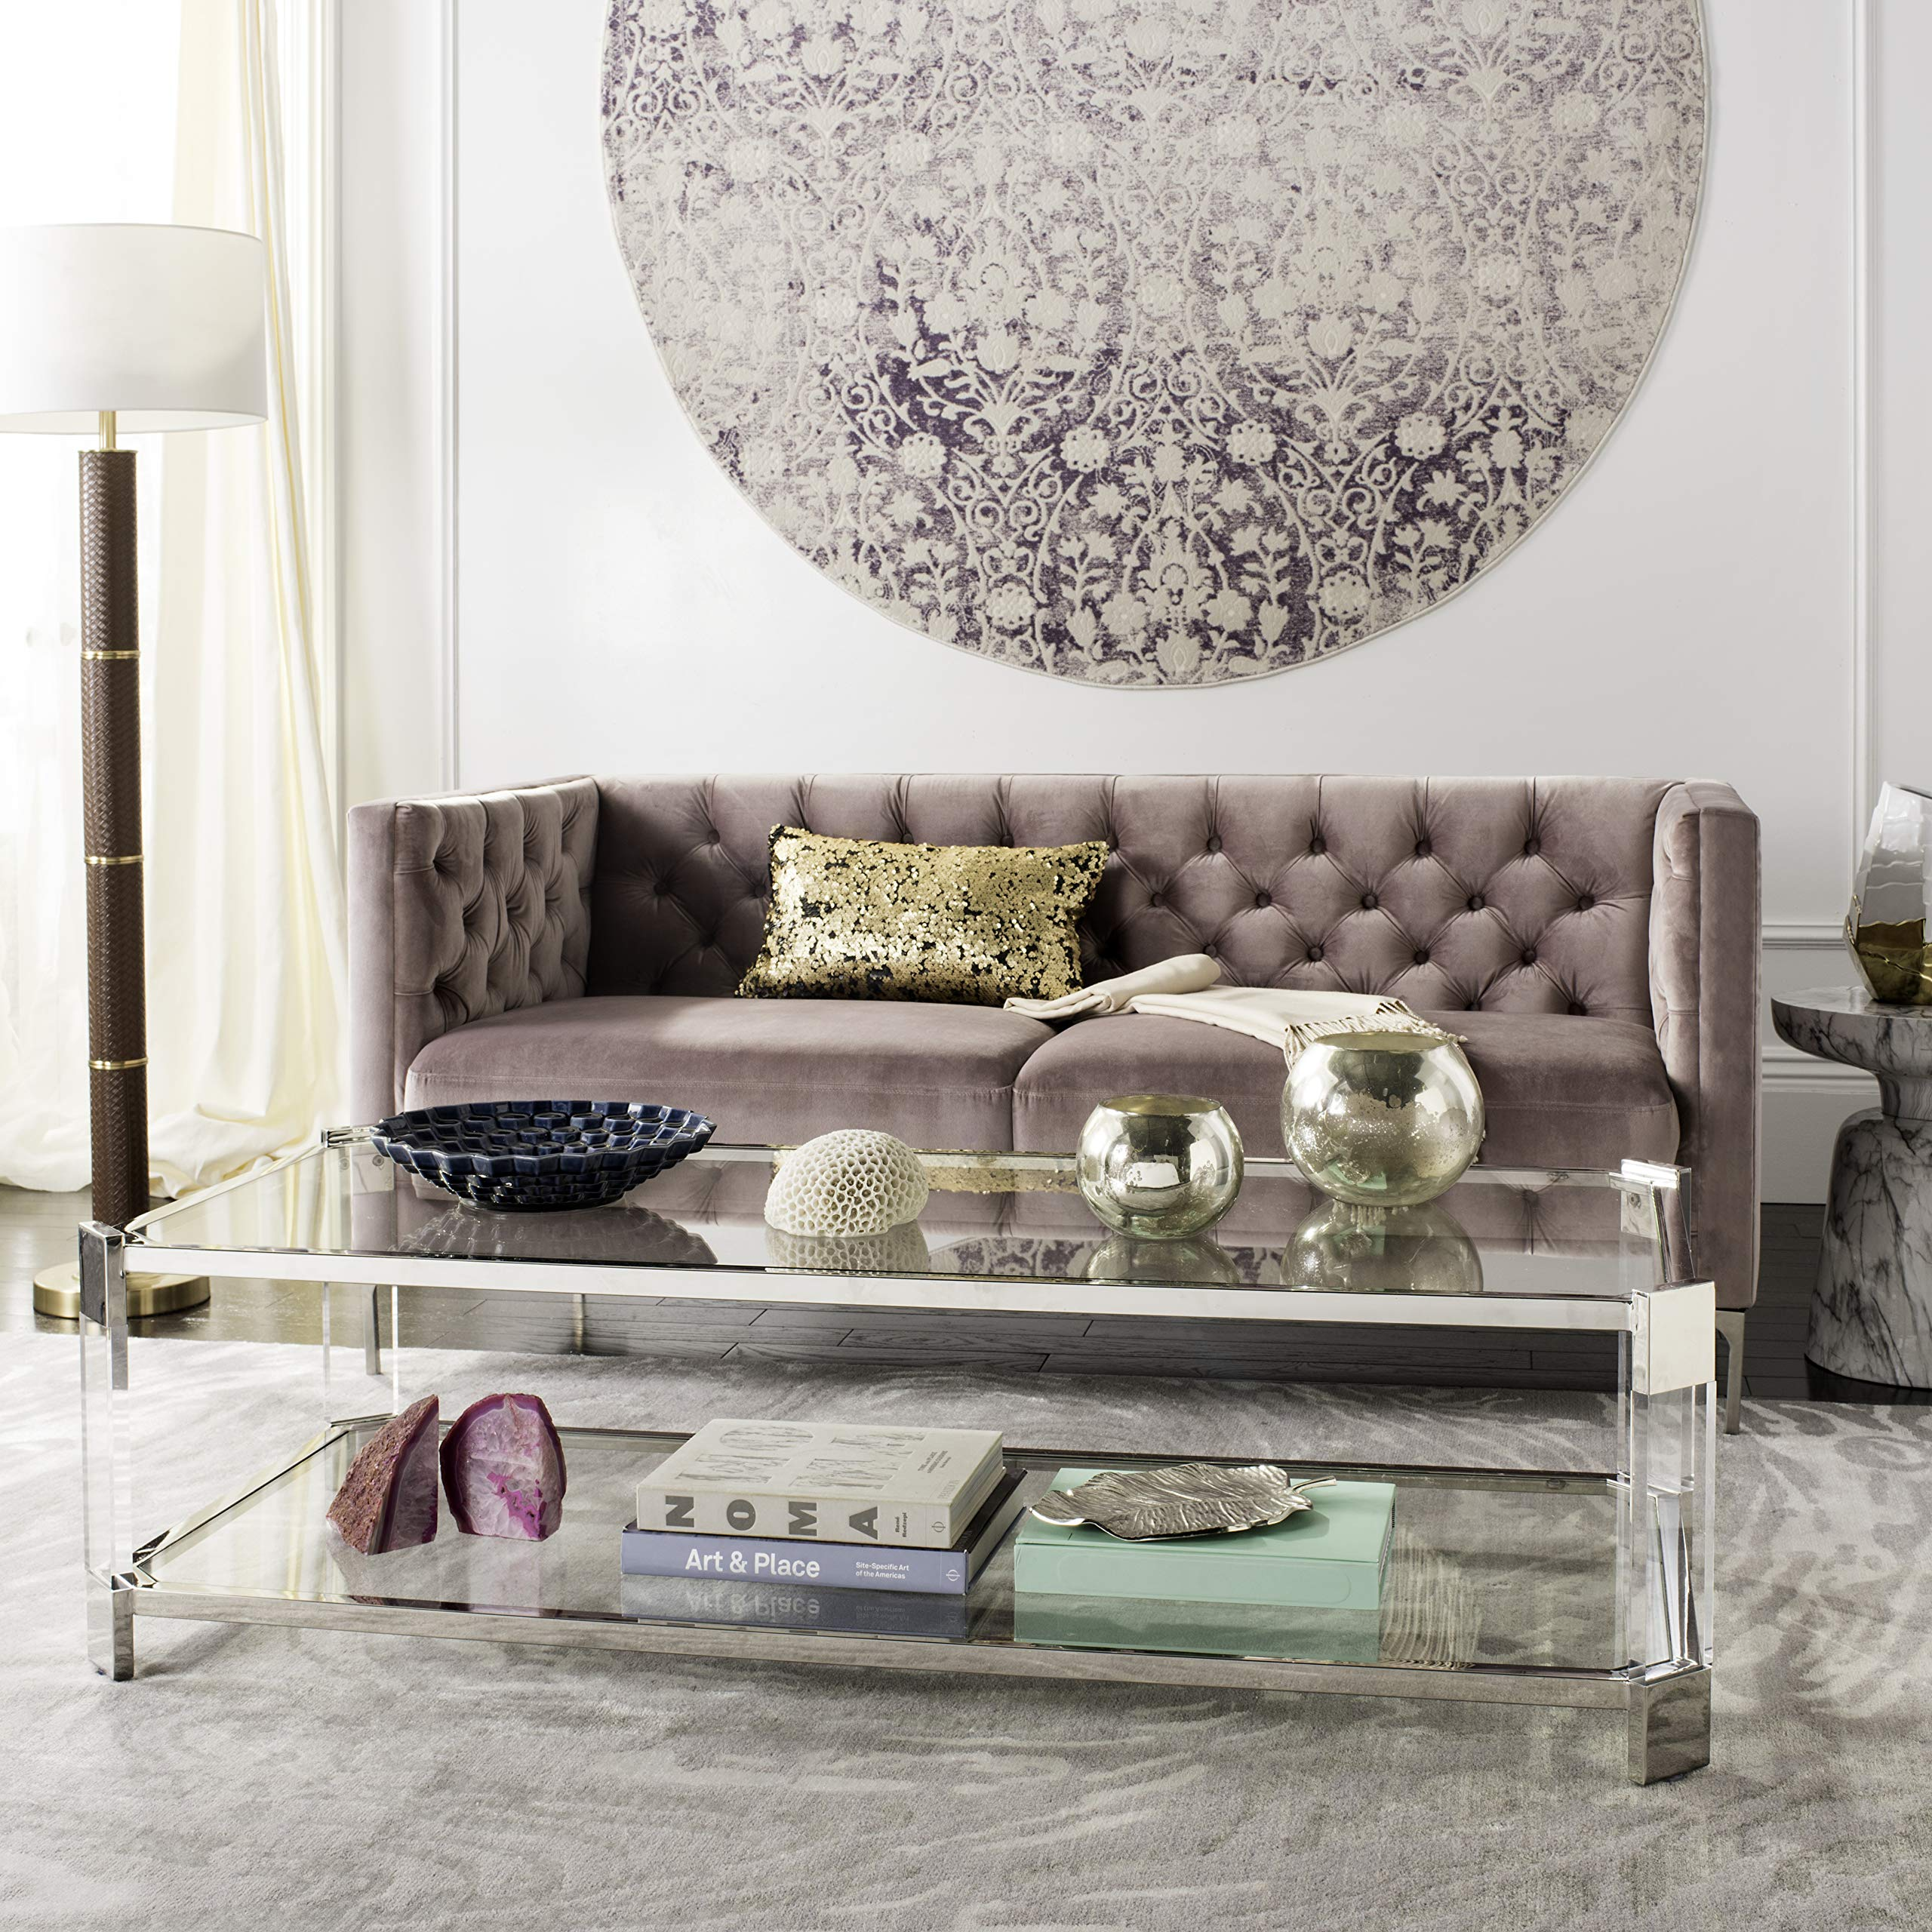 Safavieh Home Collection Gianna Glass Coffee Table, Clear by Safavieh